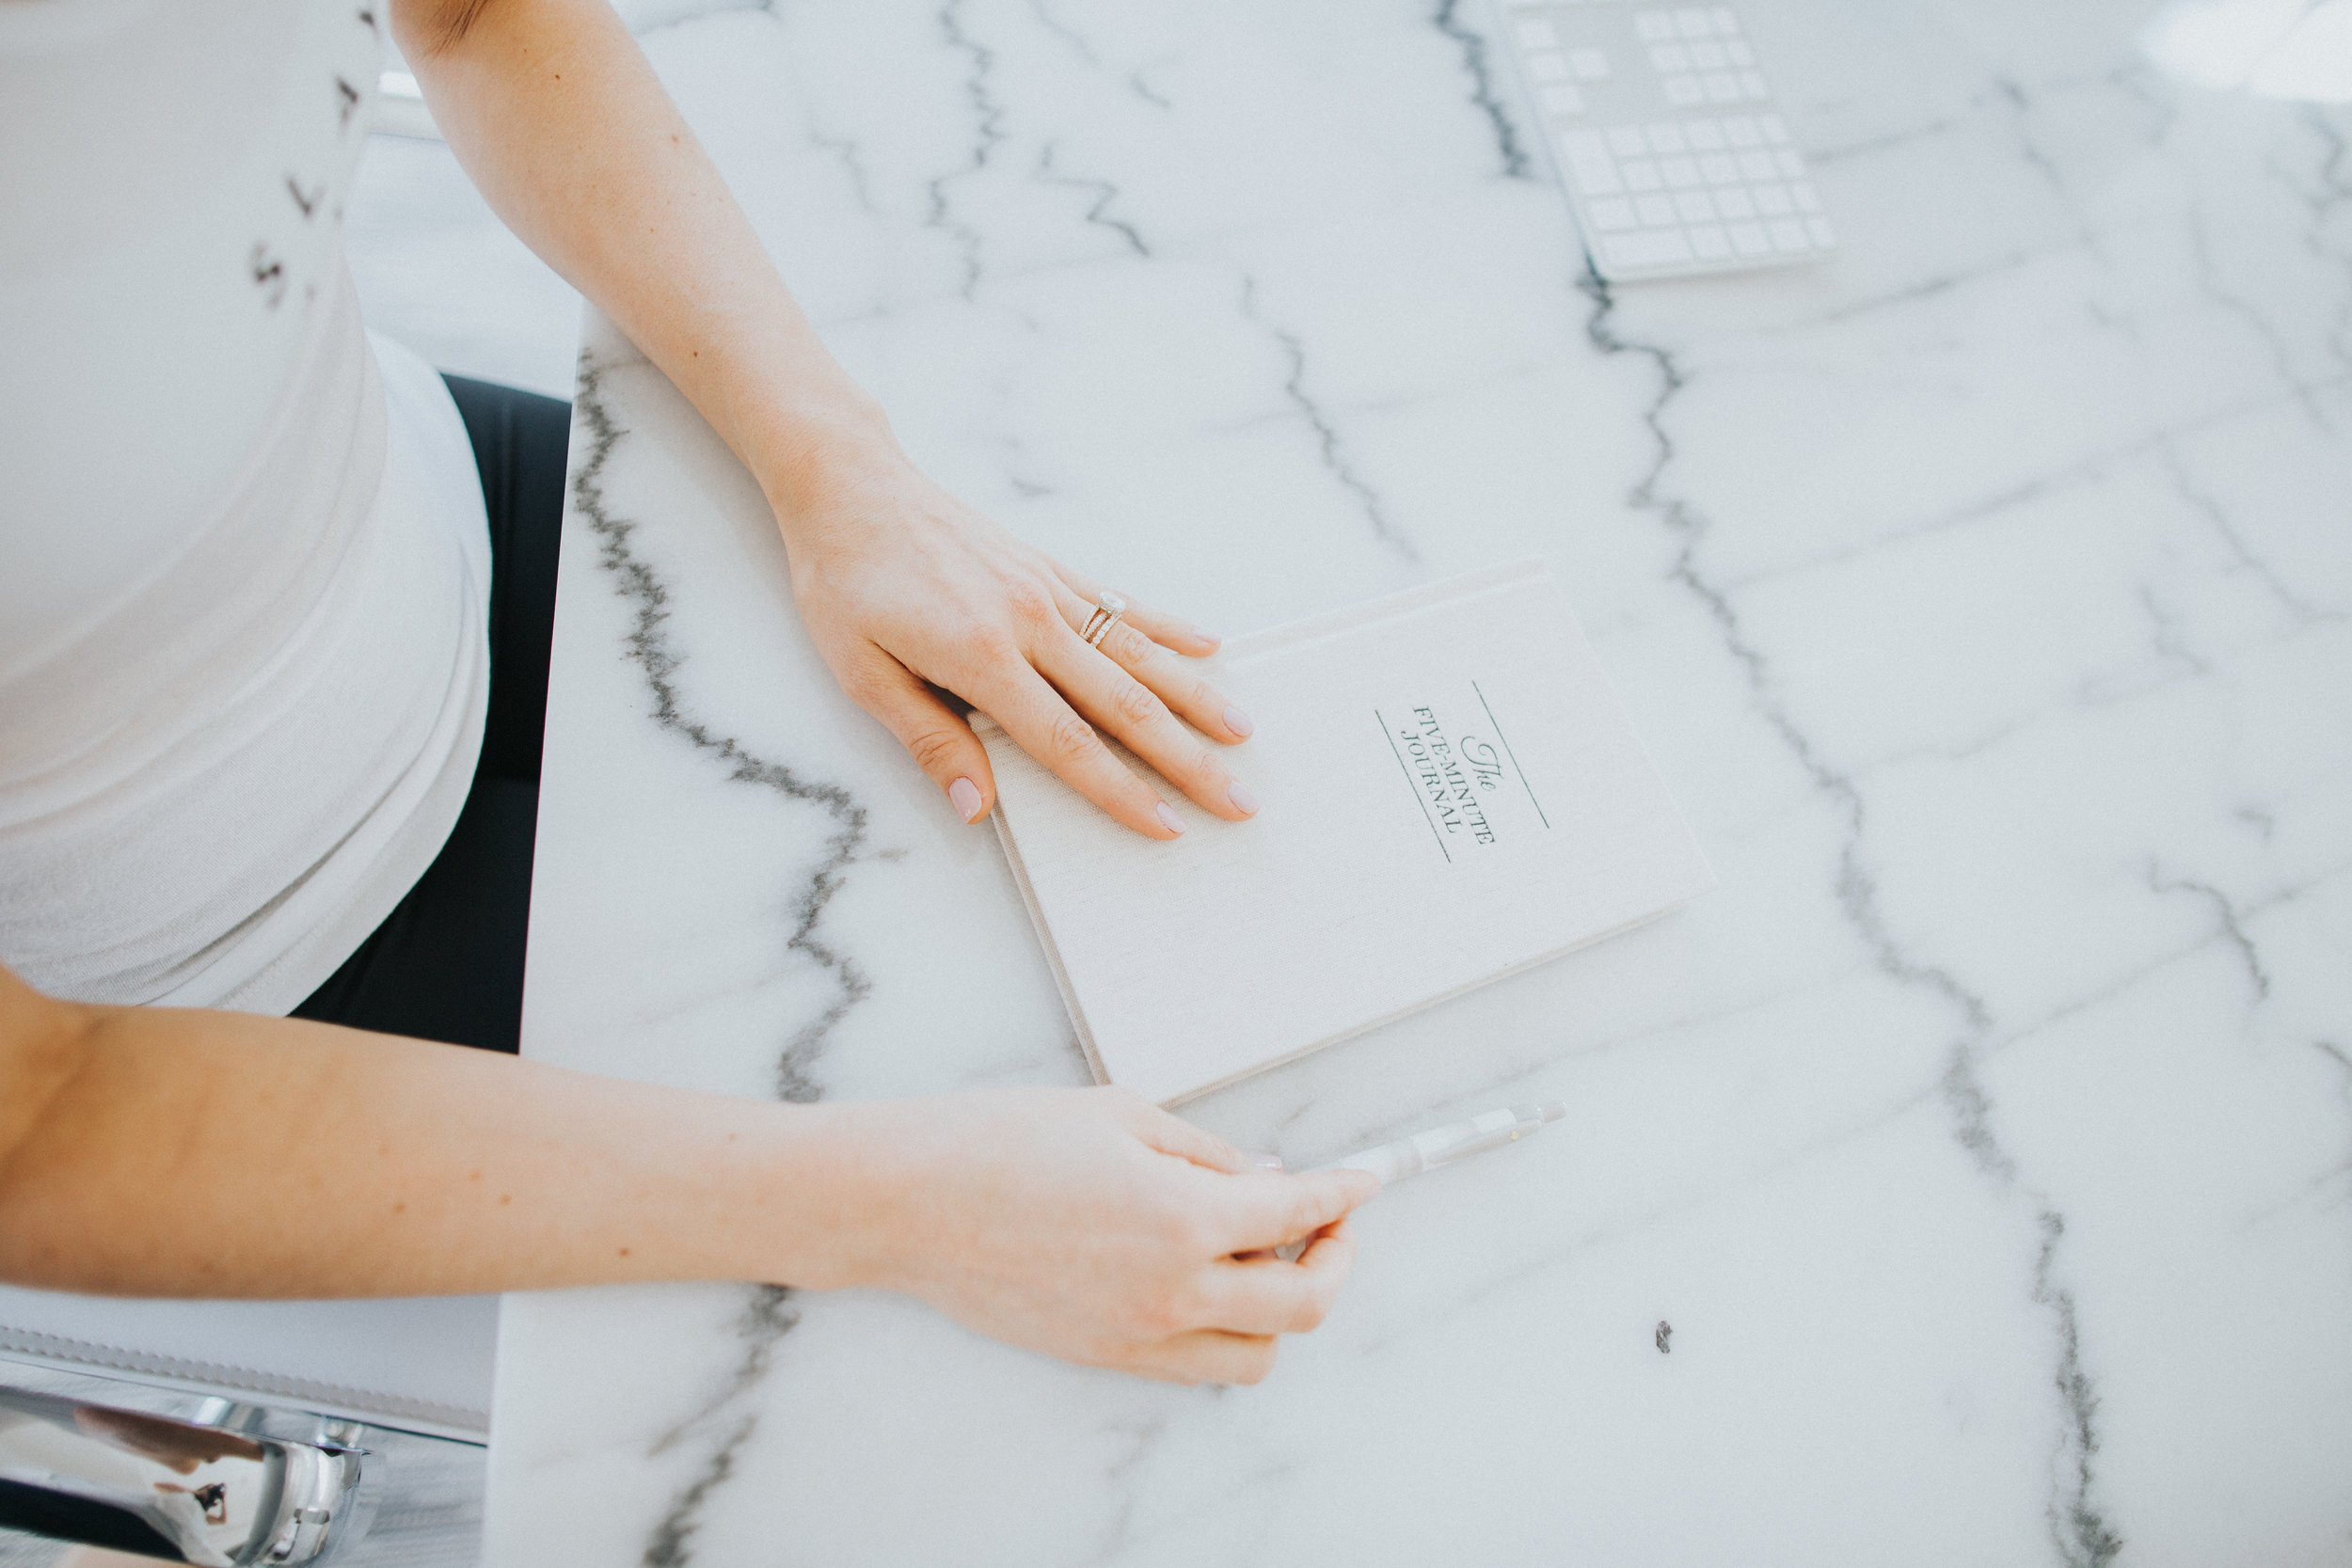 Amanda Morgan The 5 Minute Journal Routine You Need To Try